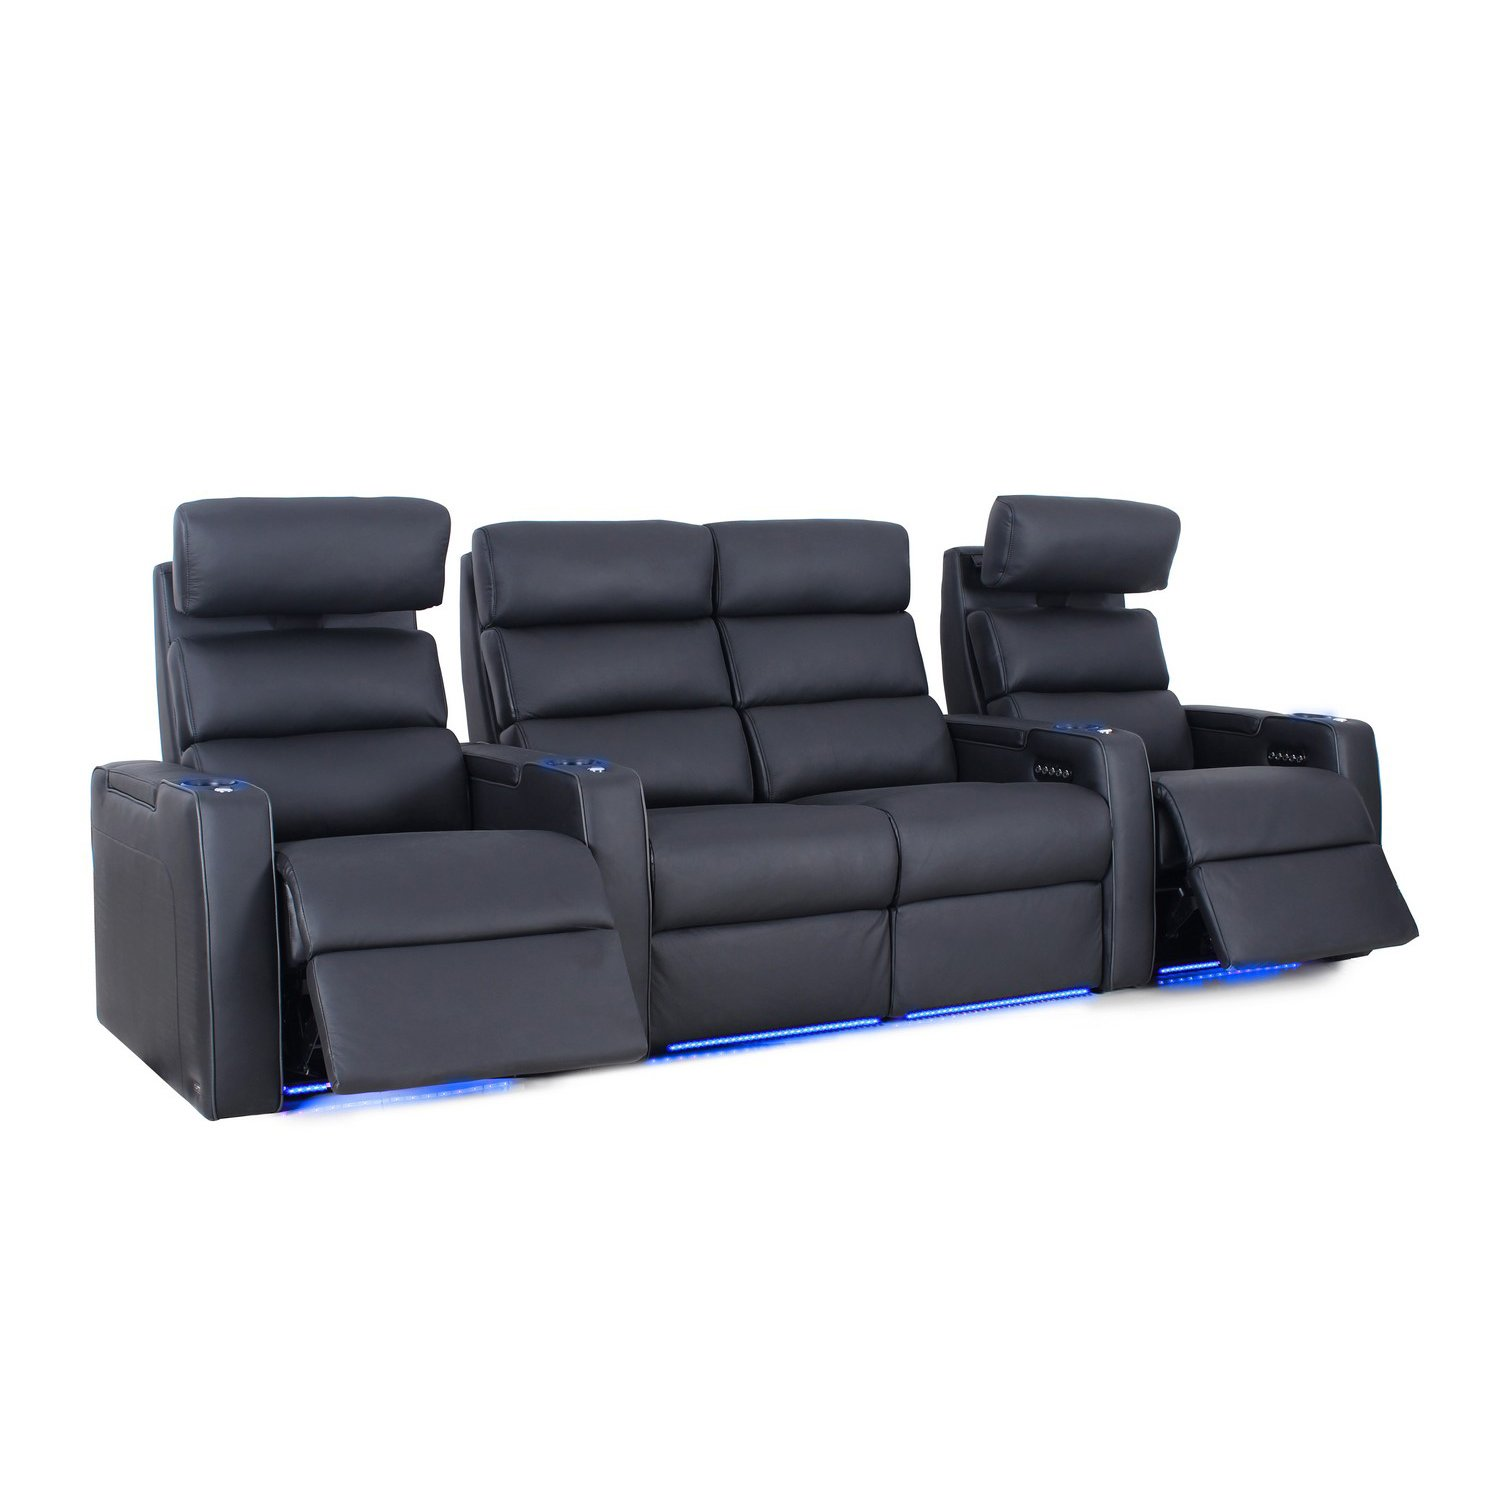 Octane Seating Dream HR Home Theater Seats - Black Top Grain Leather - Power Recline - Lighted Cup Holders - Row of 4 with Center Loveseat by Octane Seating